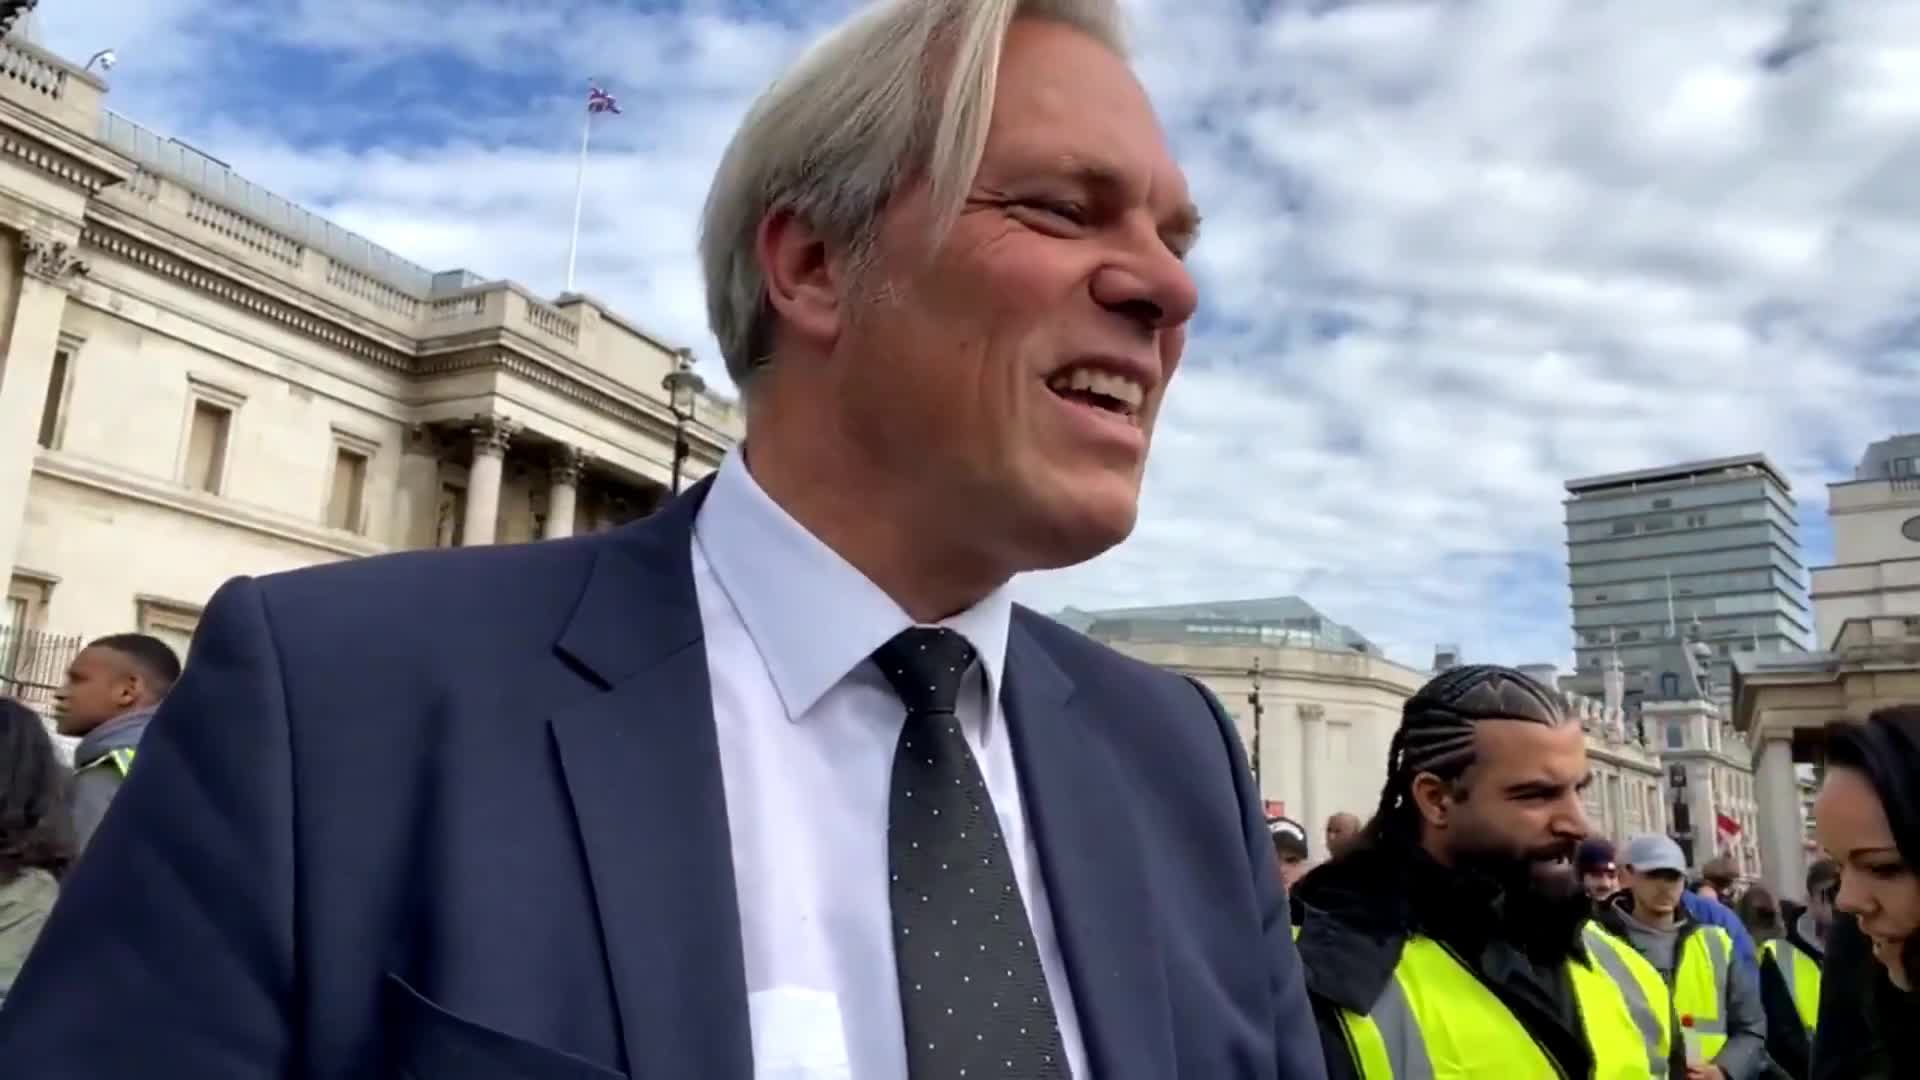 German Doctor Arrested In London For Telling The Truth